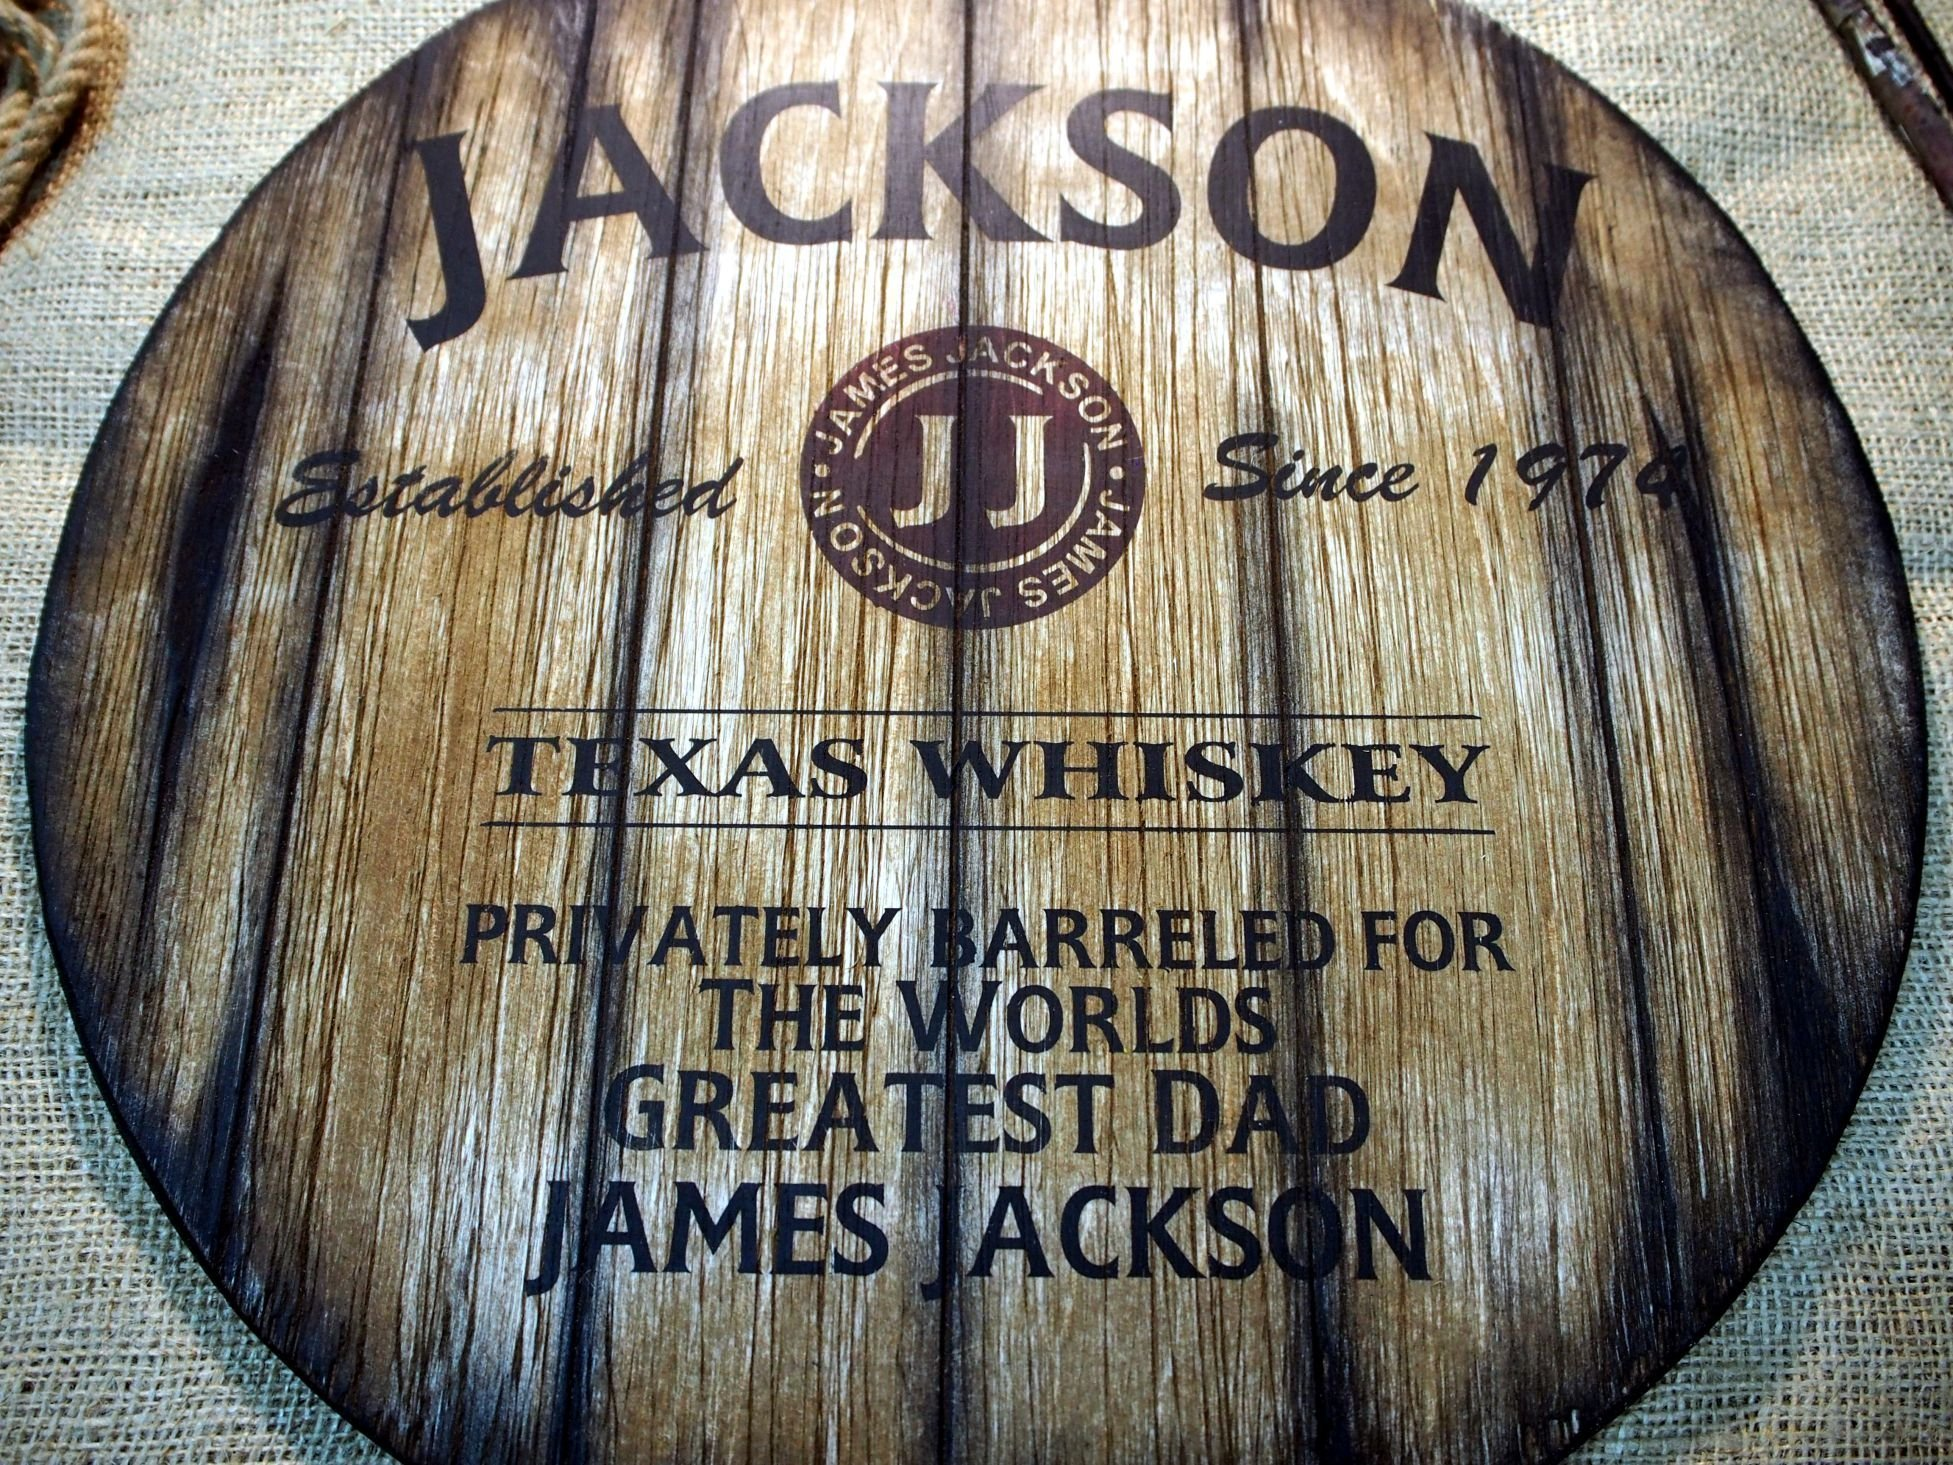 Personalized decor sign inspired by old whiskey barrel tops   Custom Gifts for men   Rustic Living room, Home Bar, Man Cave decoration   Unique Husband, Dad, Groom, Best Man Gift